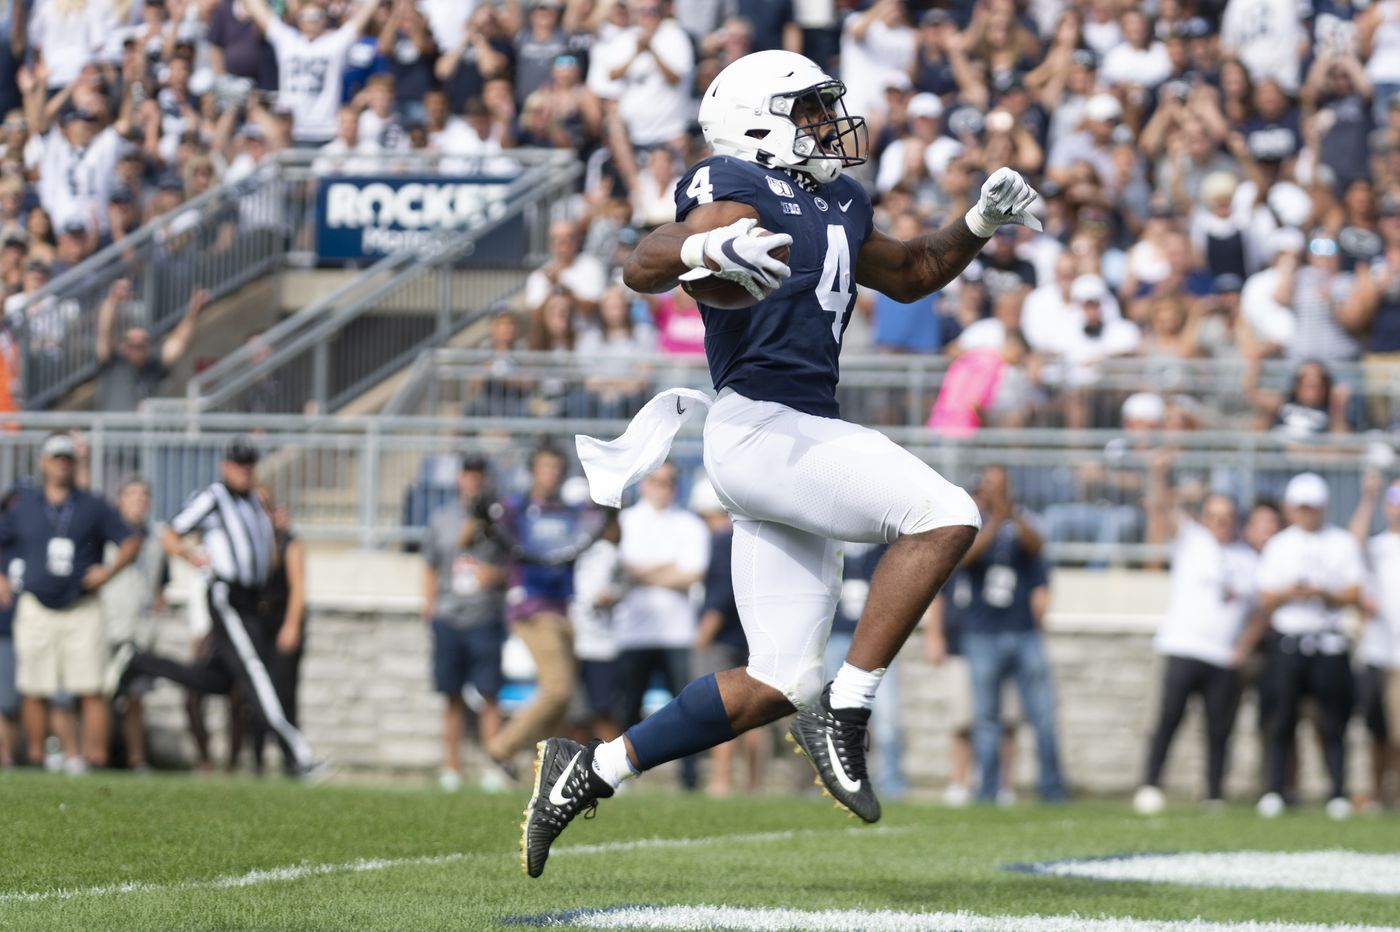 Penn State stays put at No. 15 in first Associated Press regular-season top 25 poll